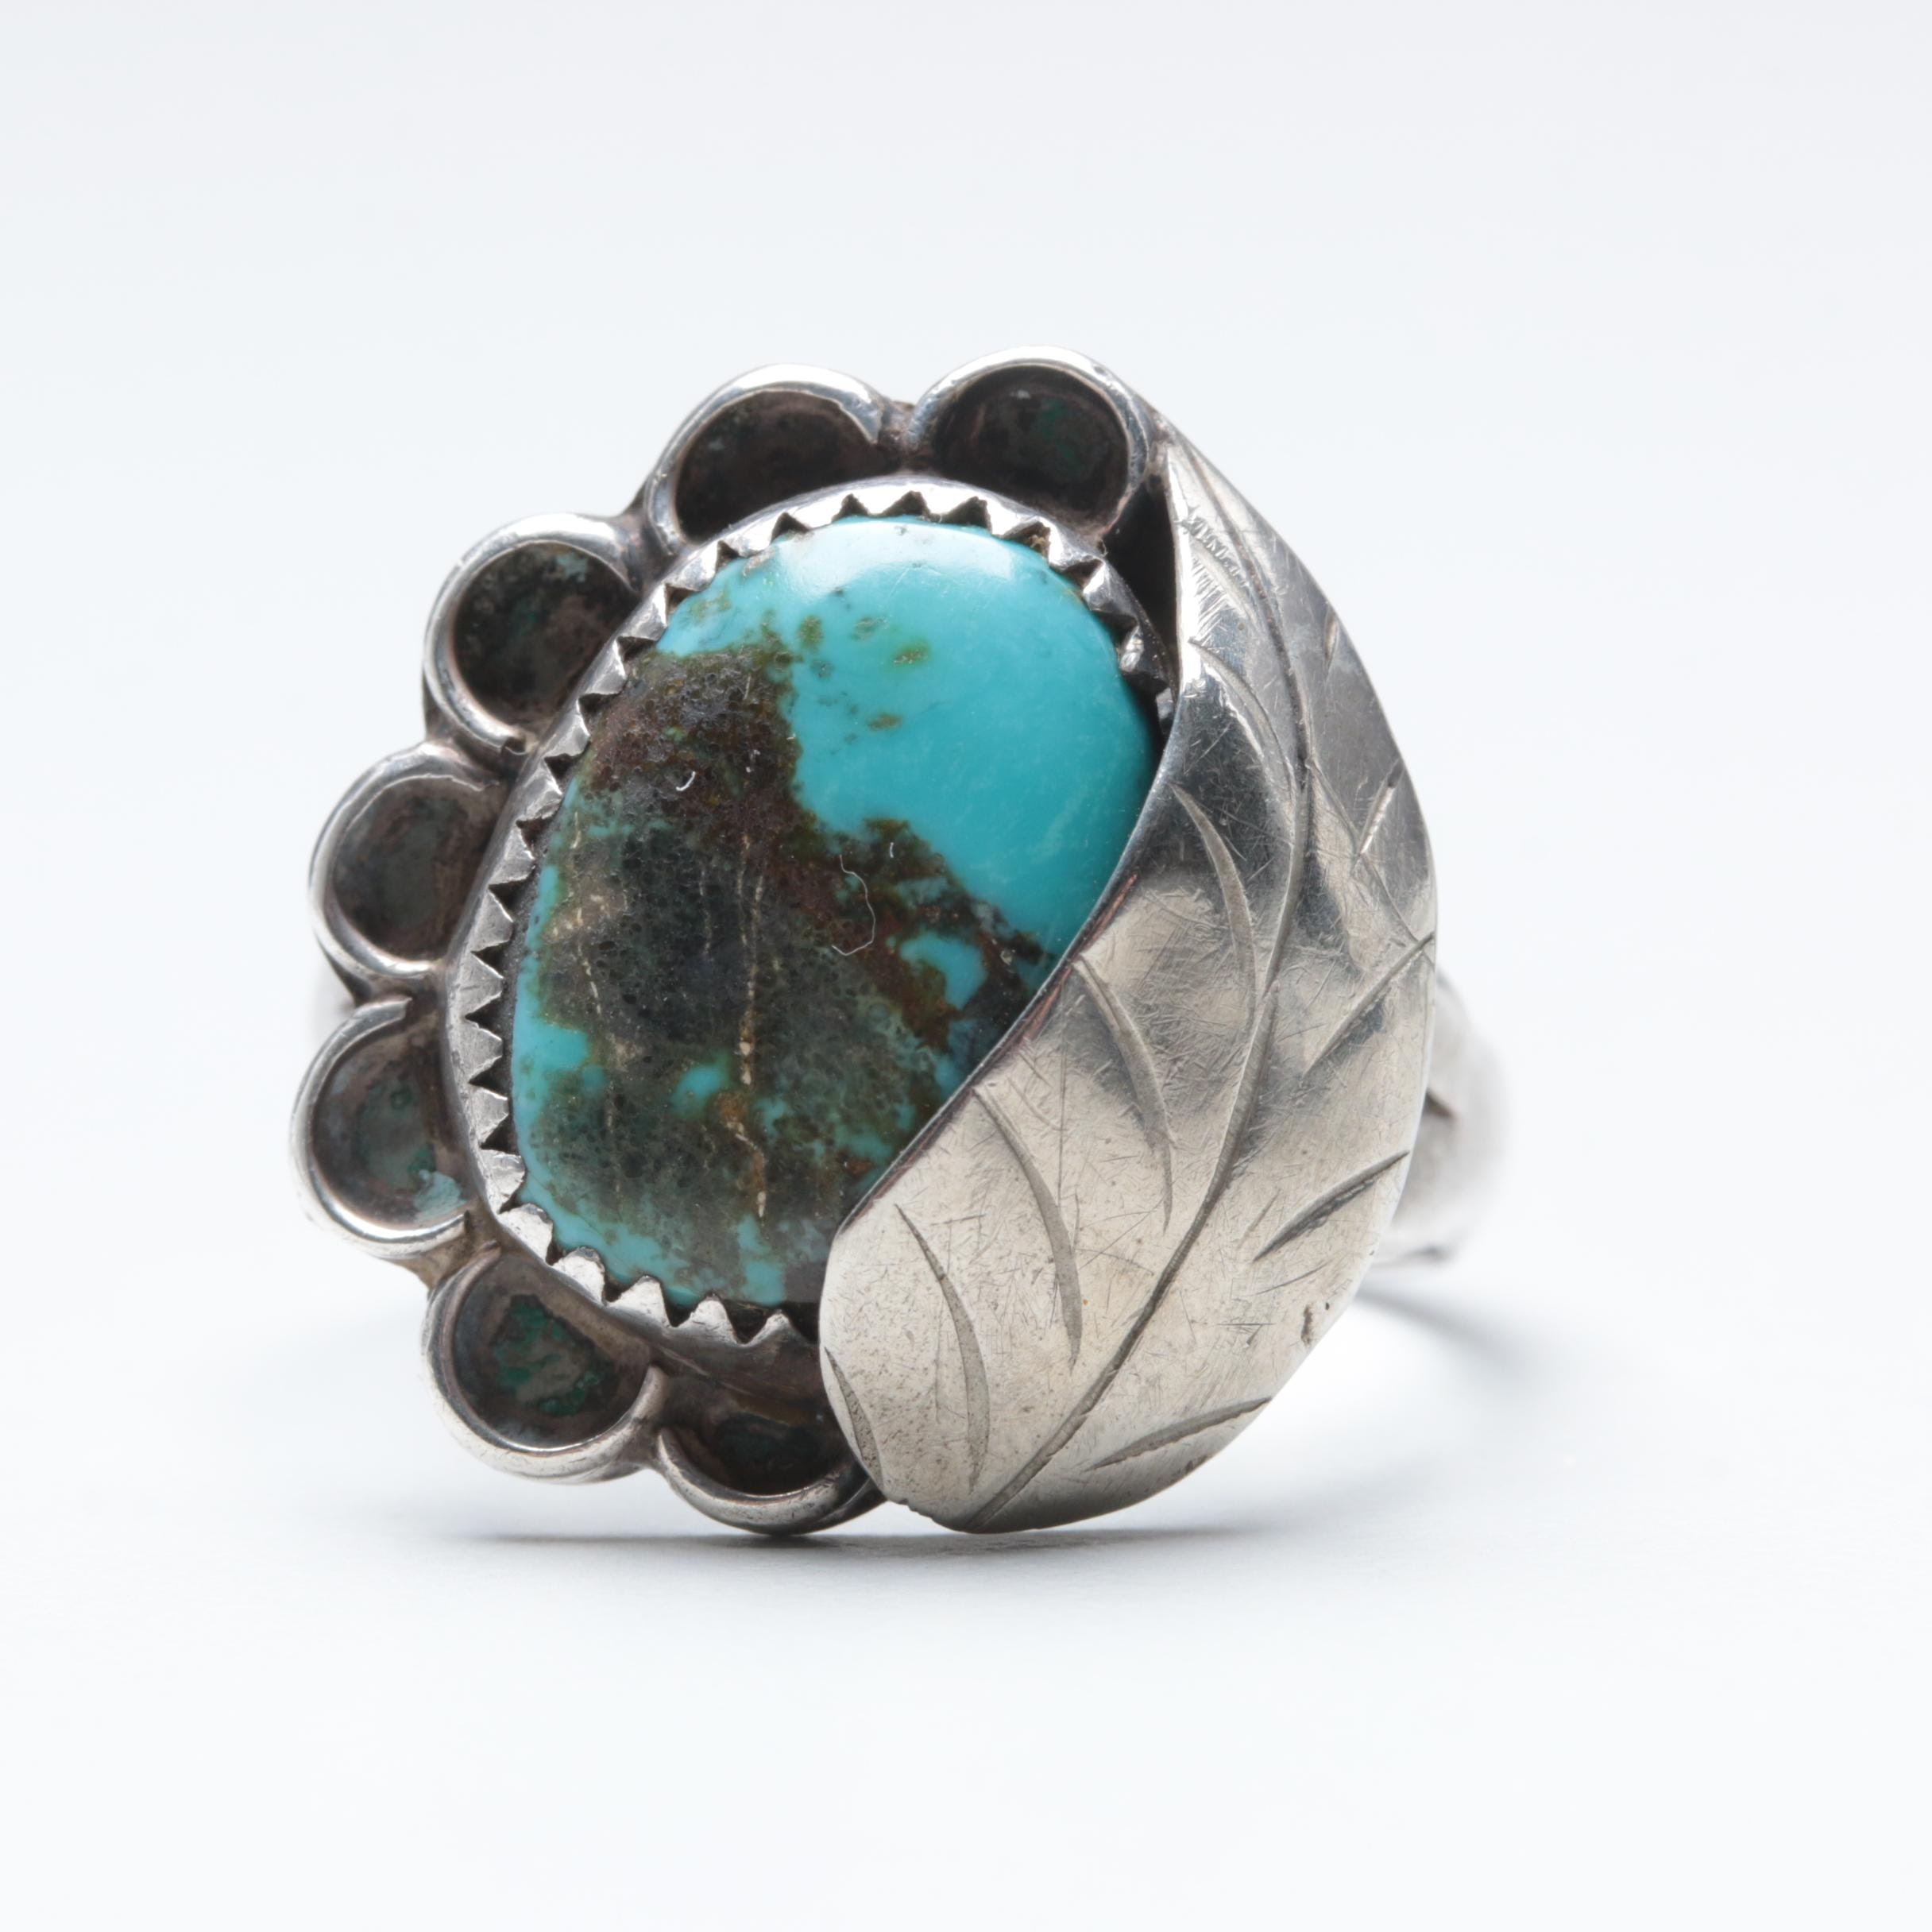 Southwestern Style Sterling Silver and Silver Tone Turquoise Ring